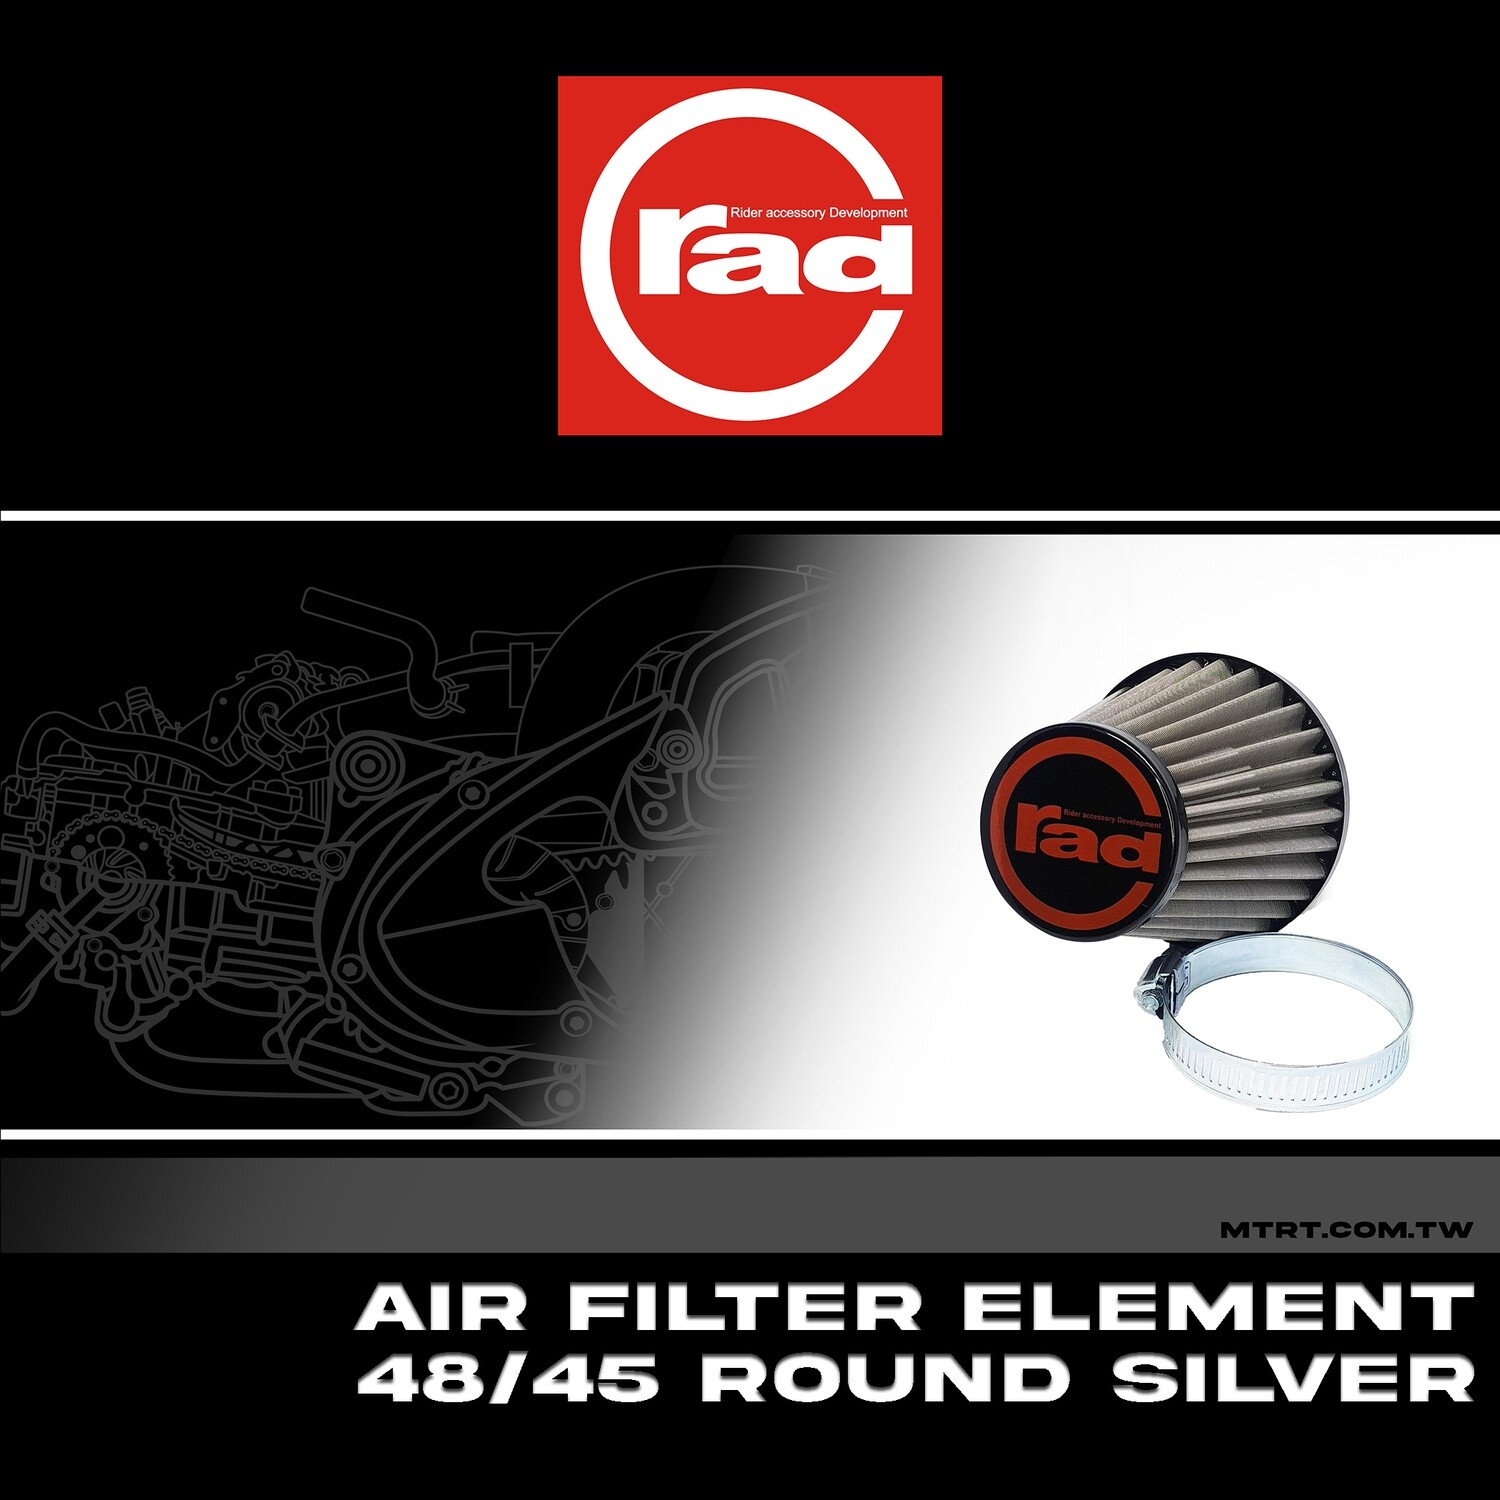 AIR FILTER ELEMENT STAINLESS 48-45MM 17200649WW4845 RAD round